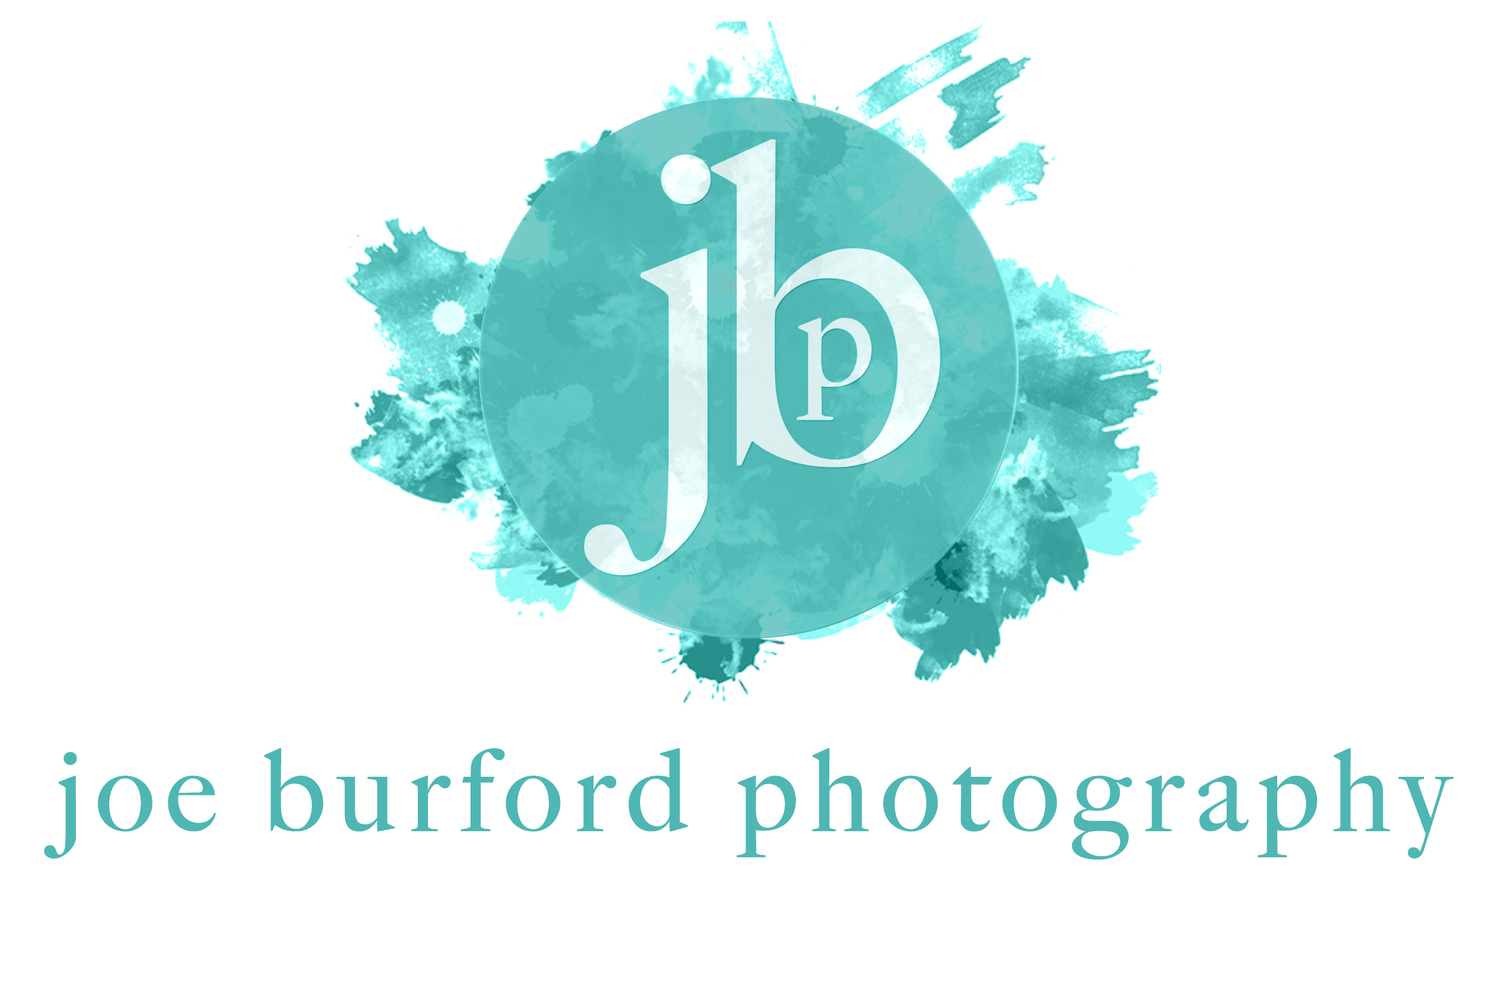 Joe Burford Photography